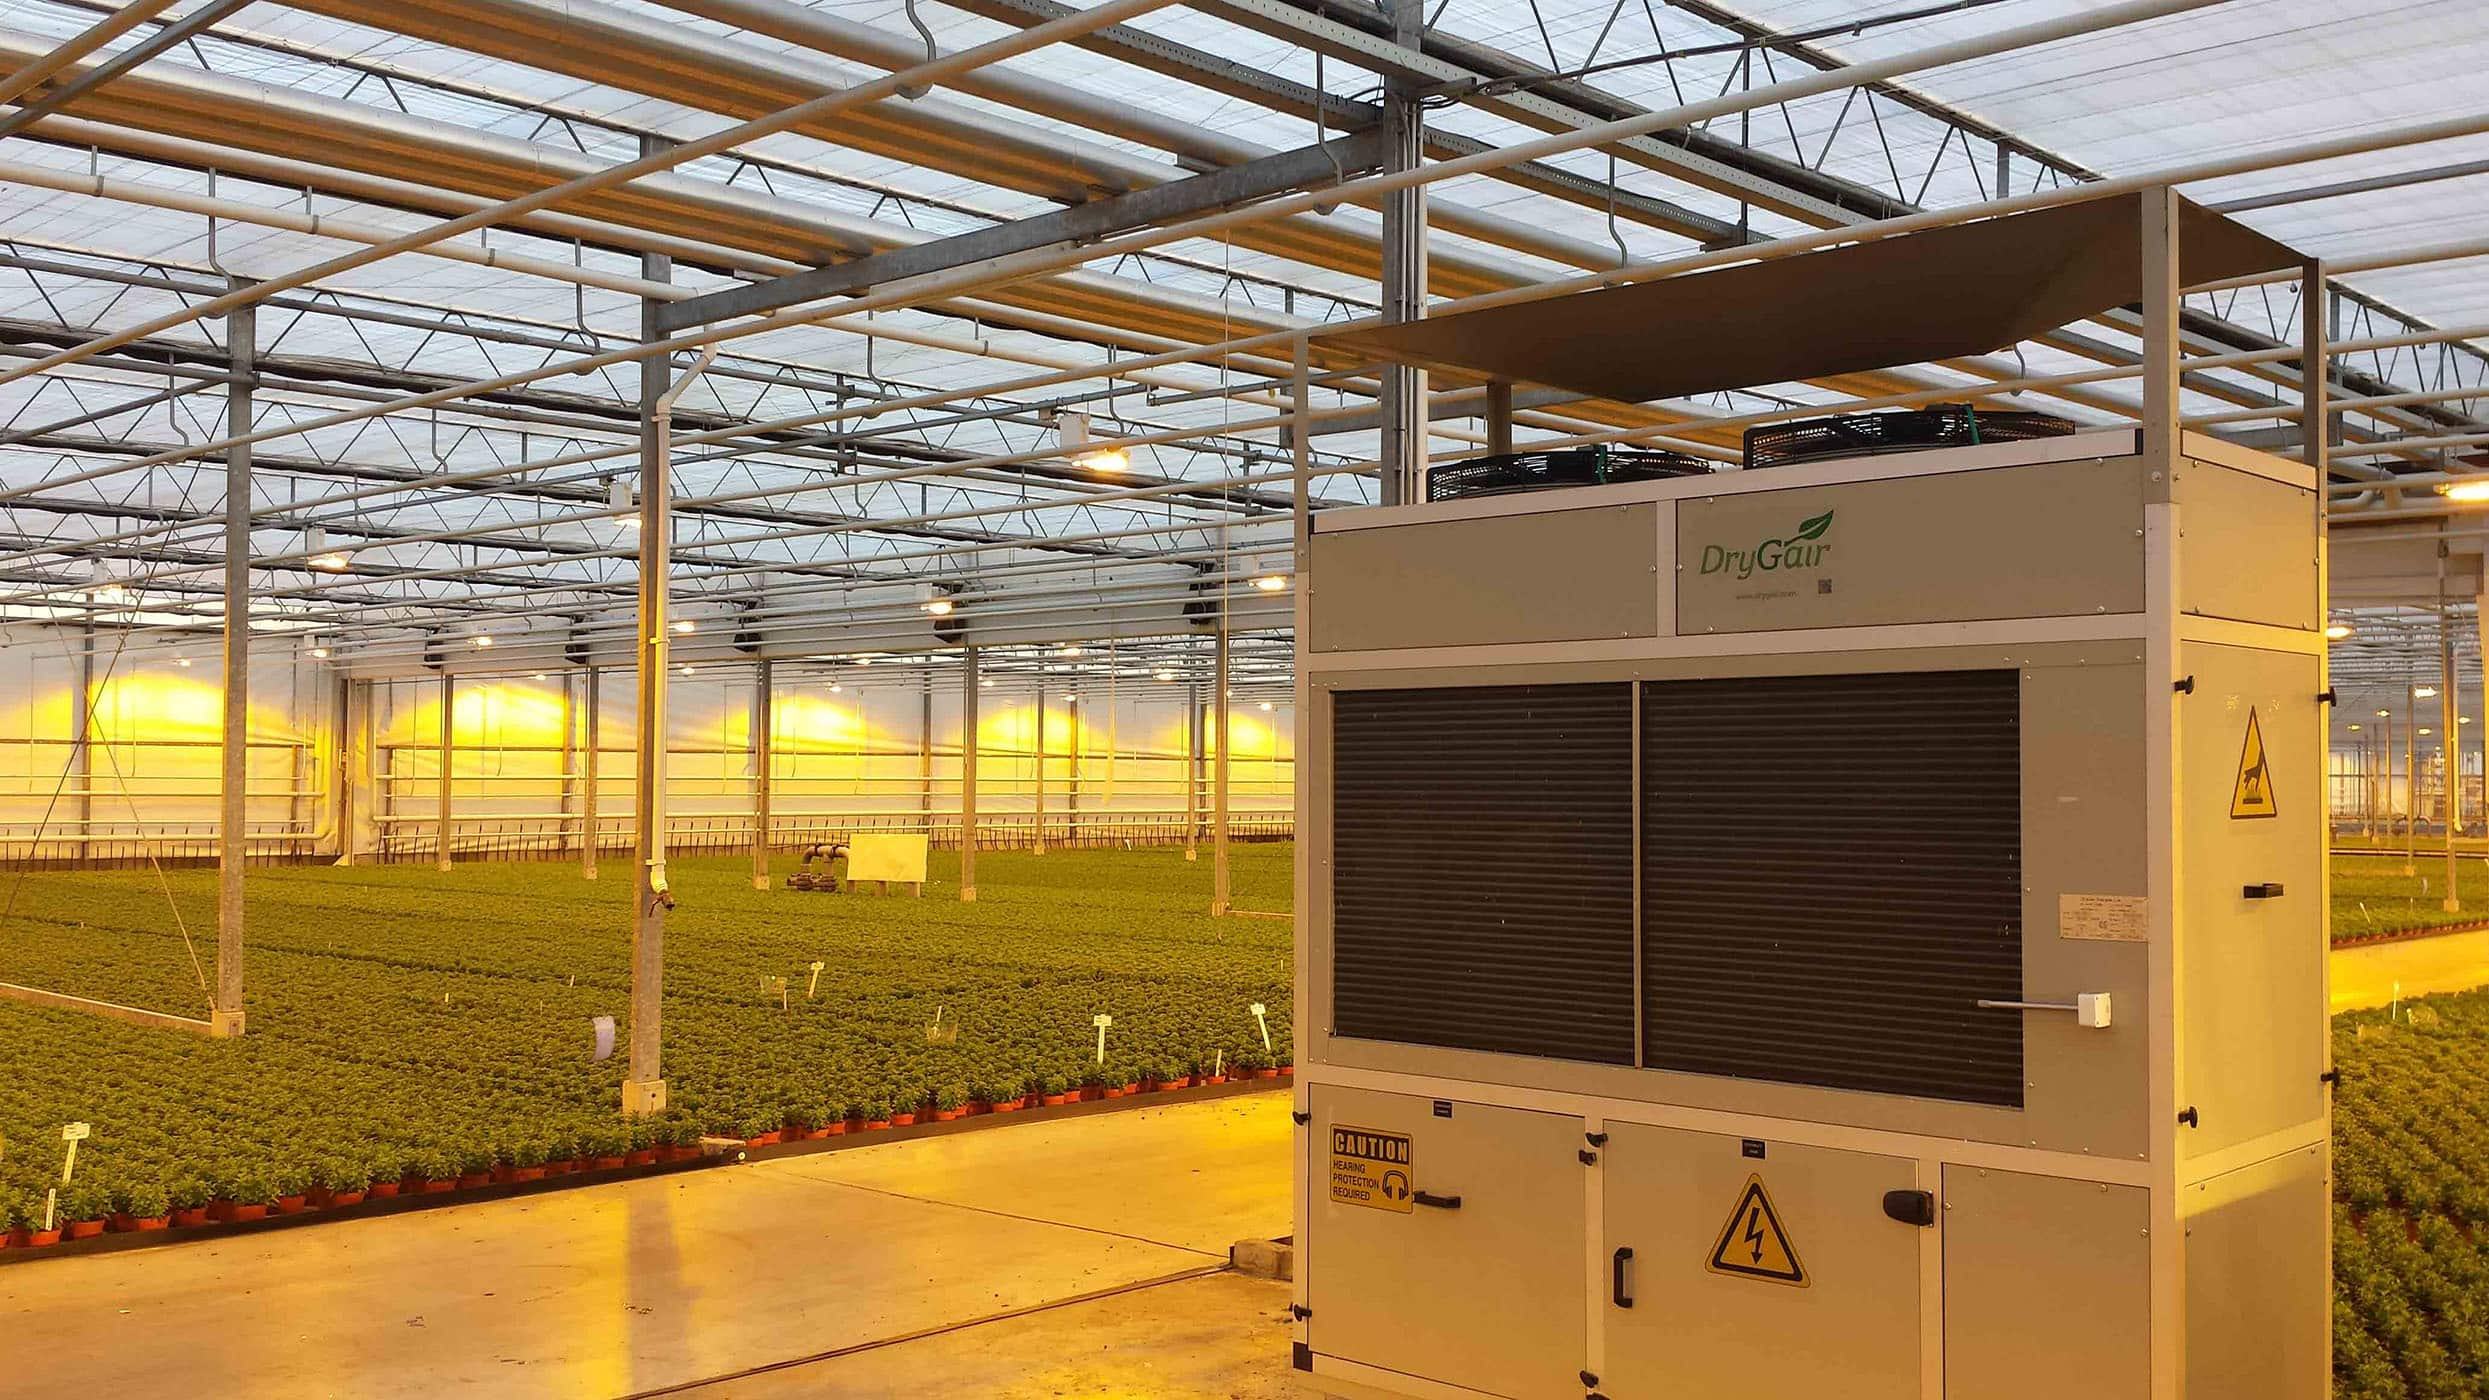 Drygair dehumidifier in greenhouse